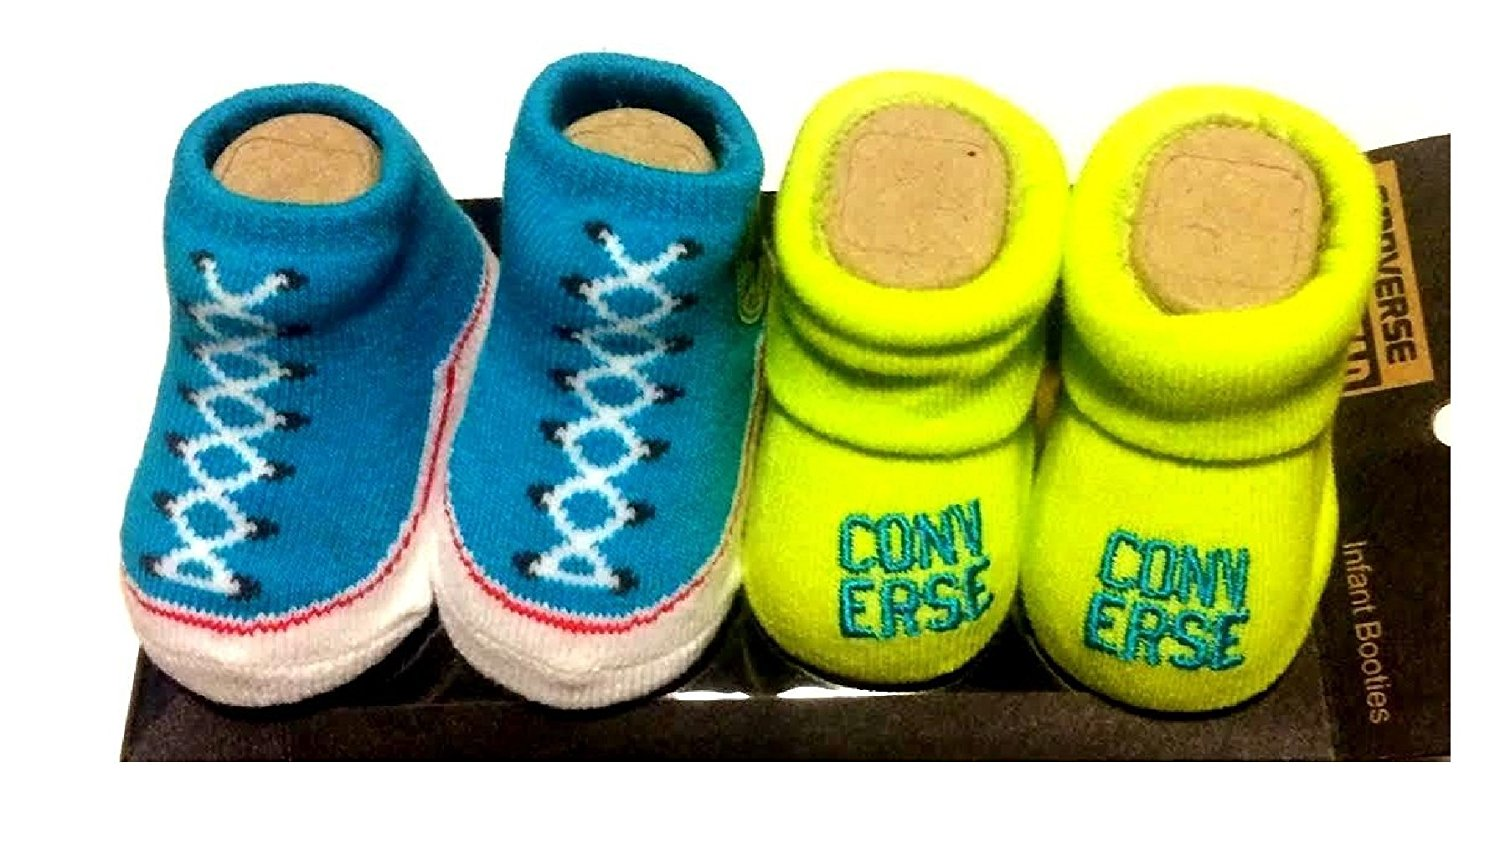 b6861fb91af7 Get Quotations · Converse 2 Pair Infant Blue Neon Booties Socks Size 0-6M  Gift Box